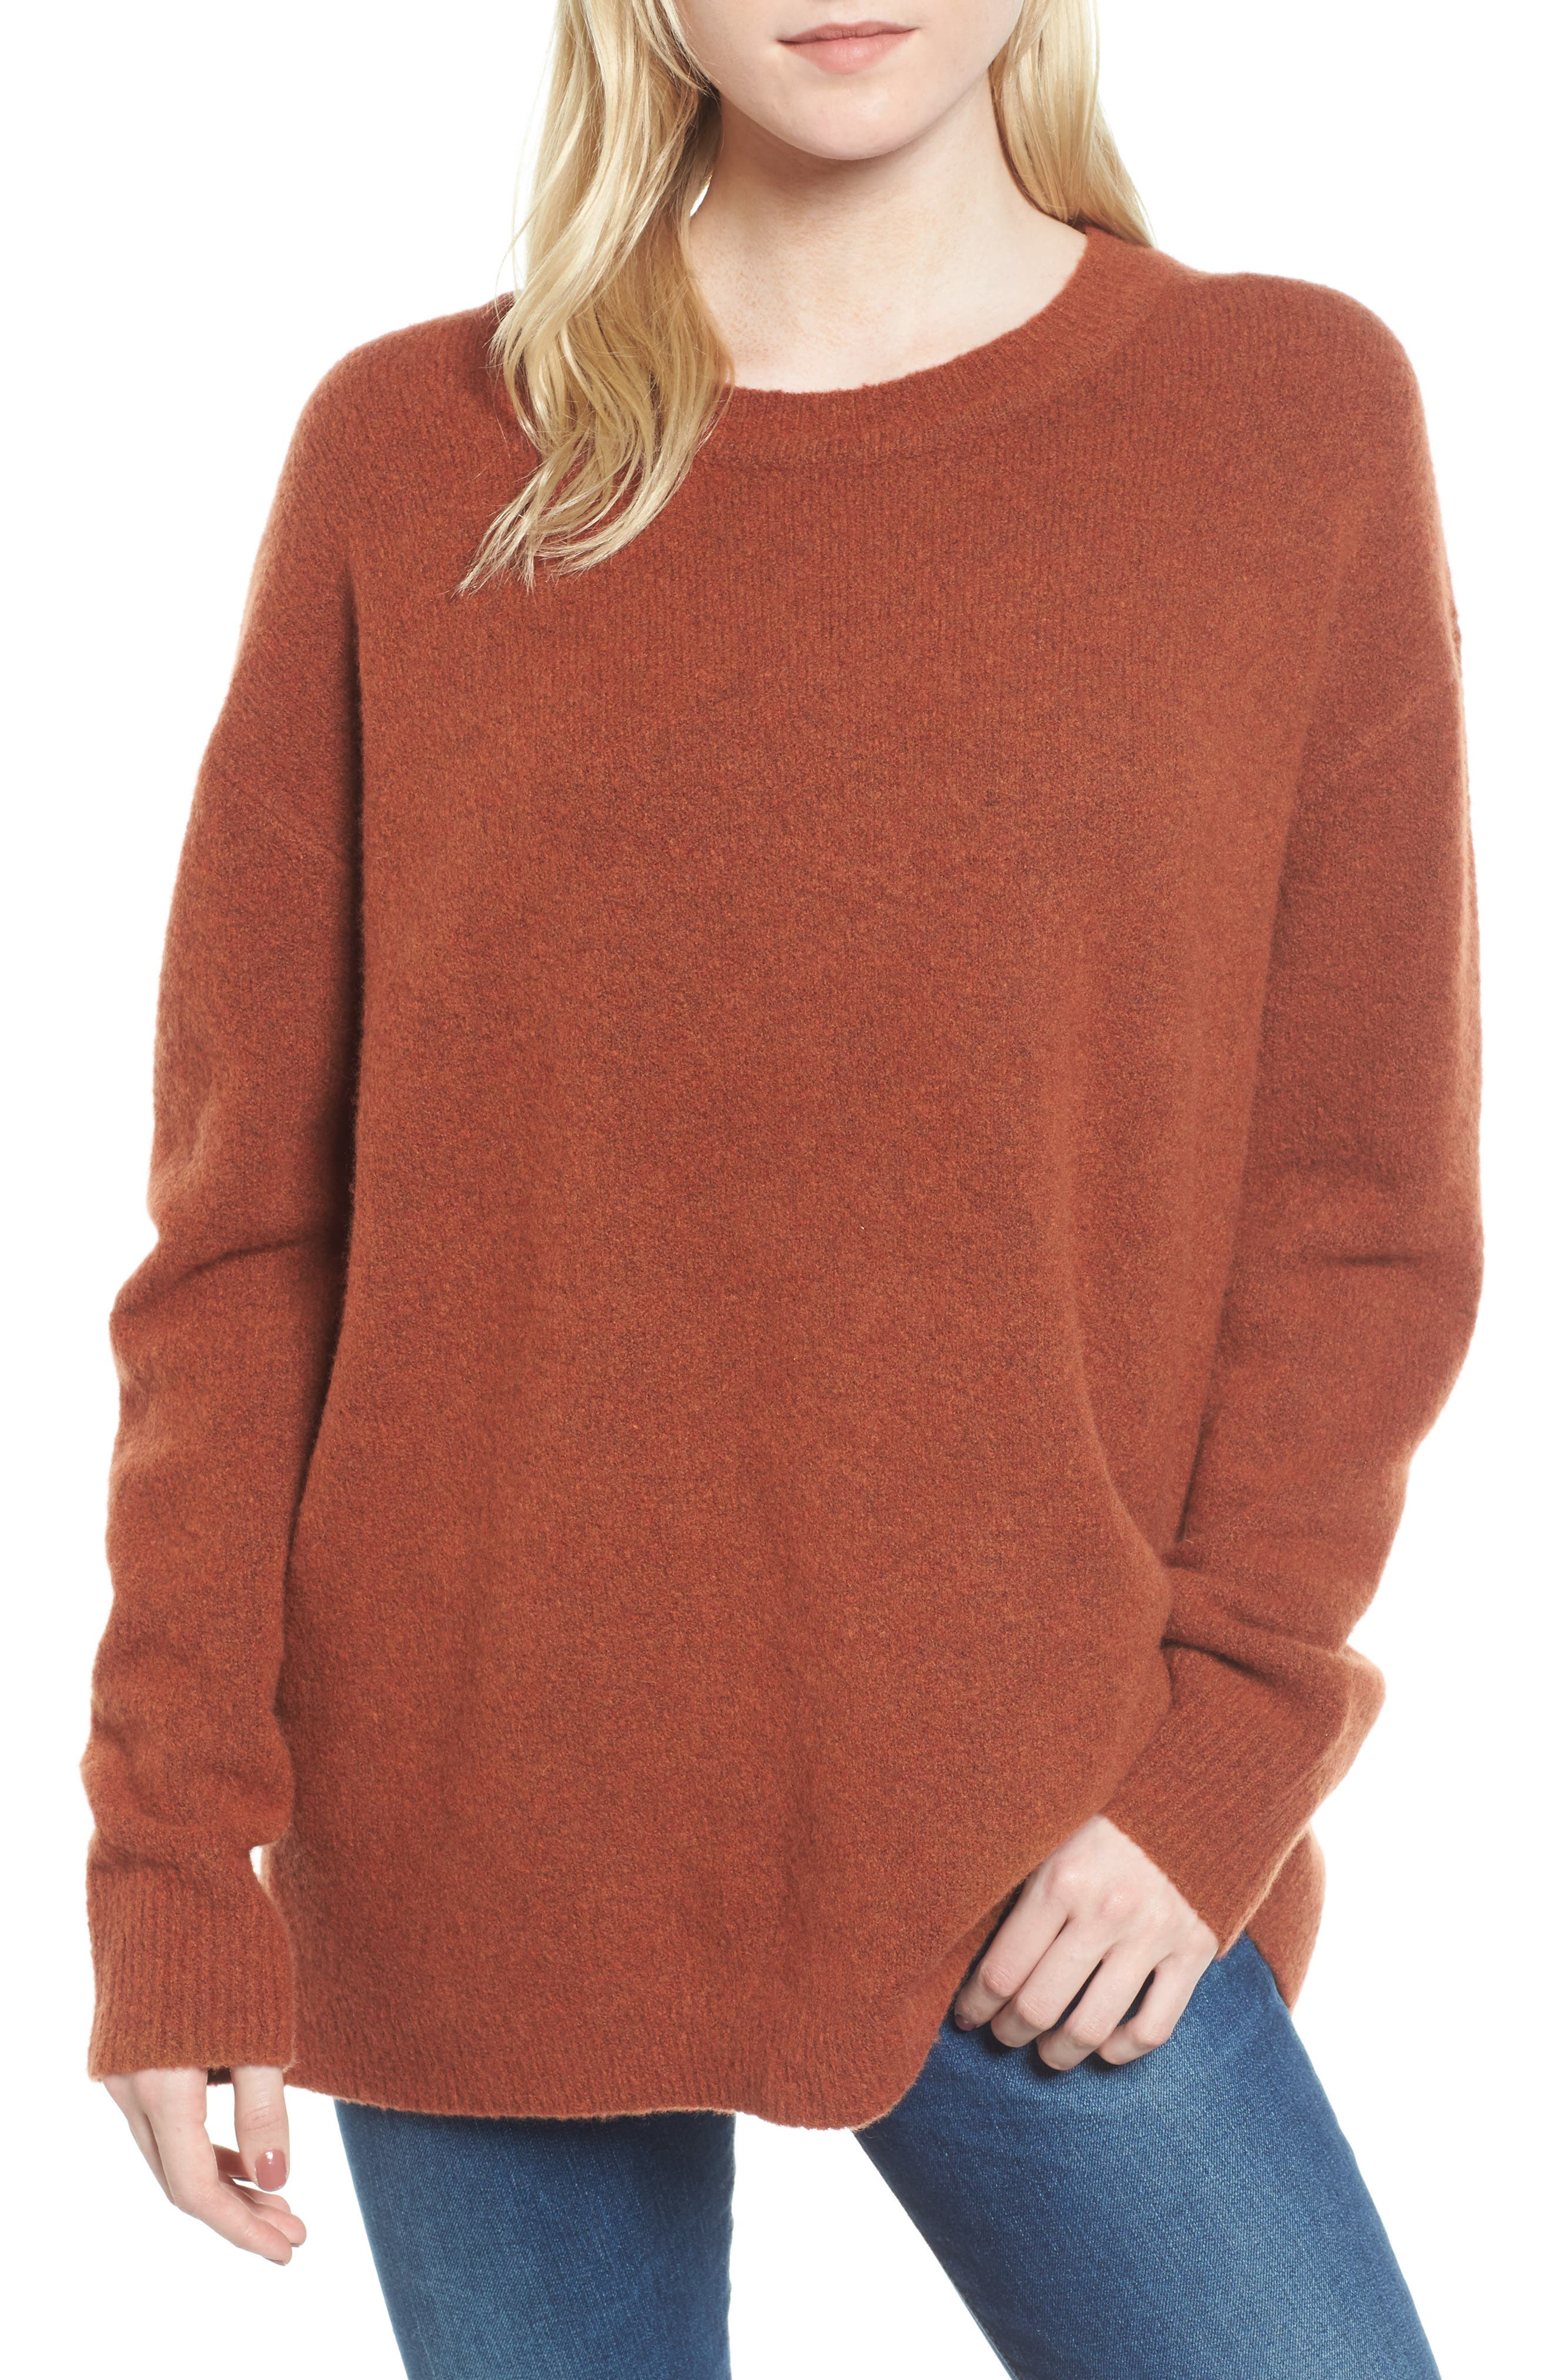 Alternate Image 1 Selected - James Perse Oversize Cashmere Sweater